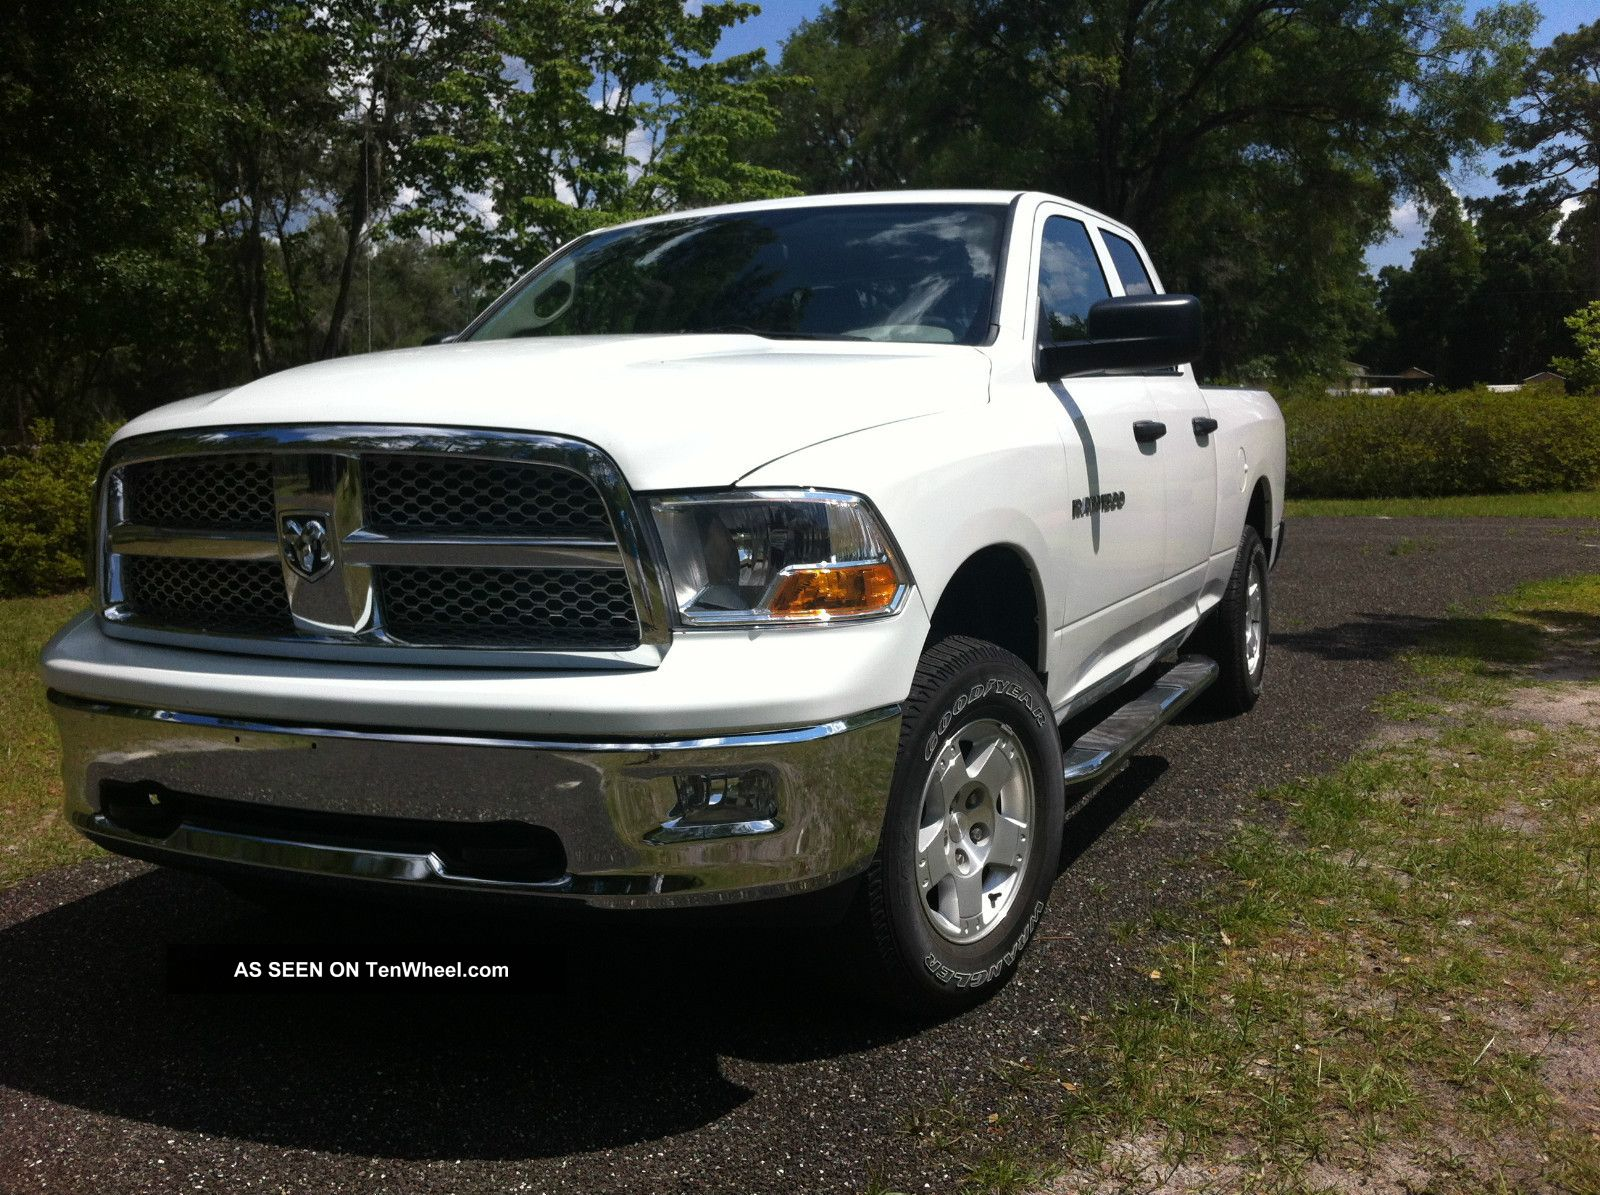 2012 dodge ram 1500 4x4 crew cab v8 ram 1500 photo 2. Black Bedroom Furniture Sets. Home Design Ideas